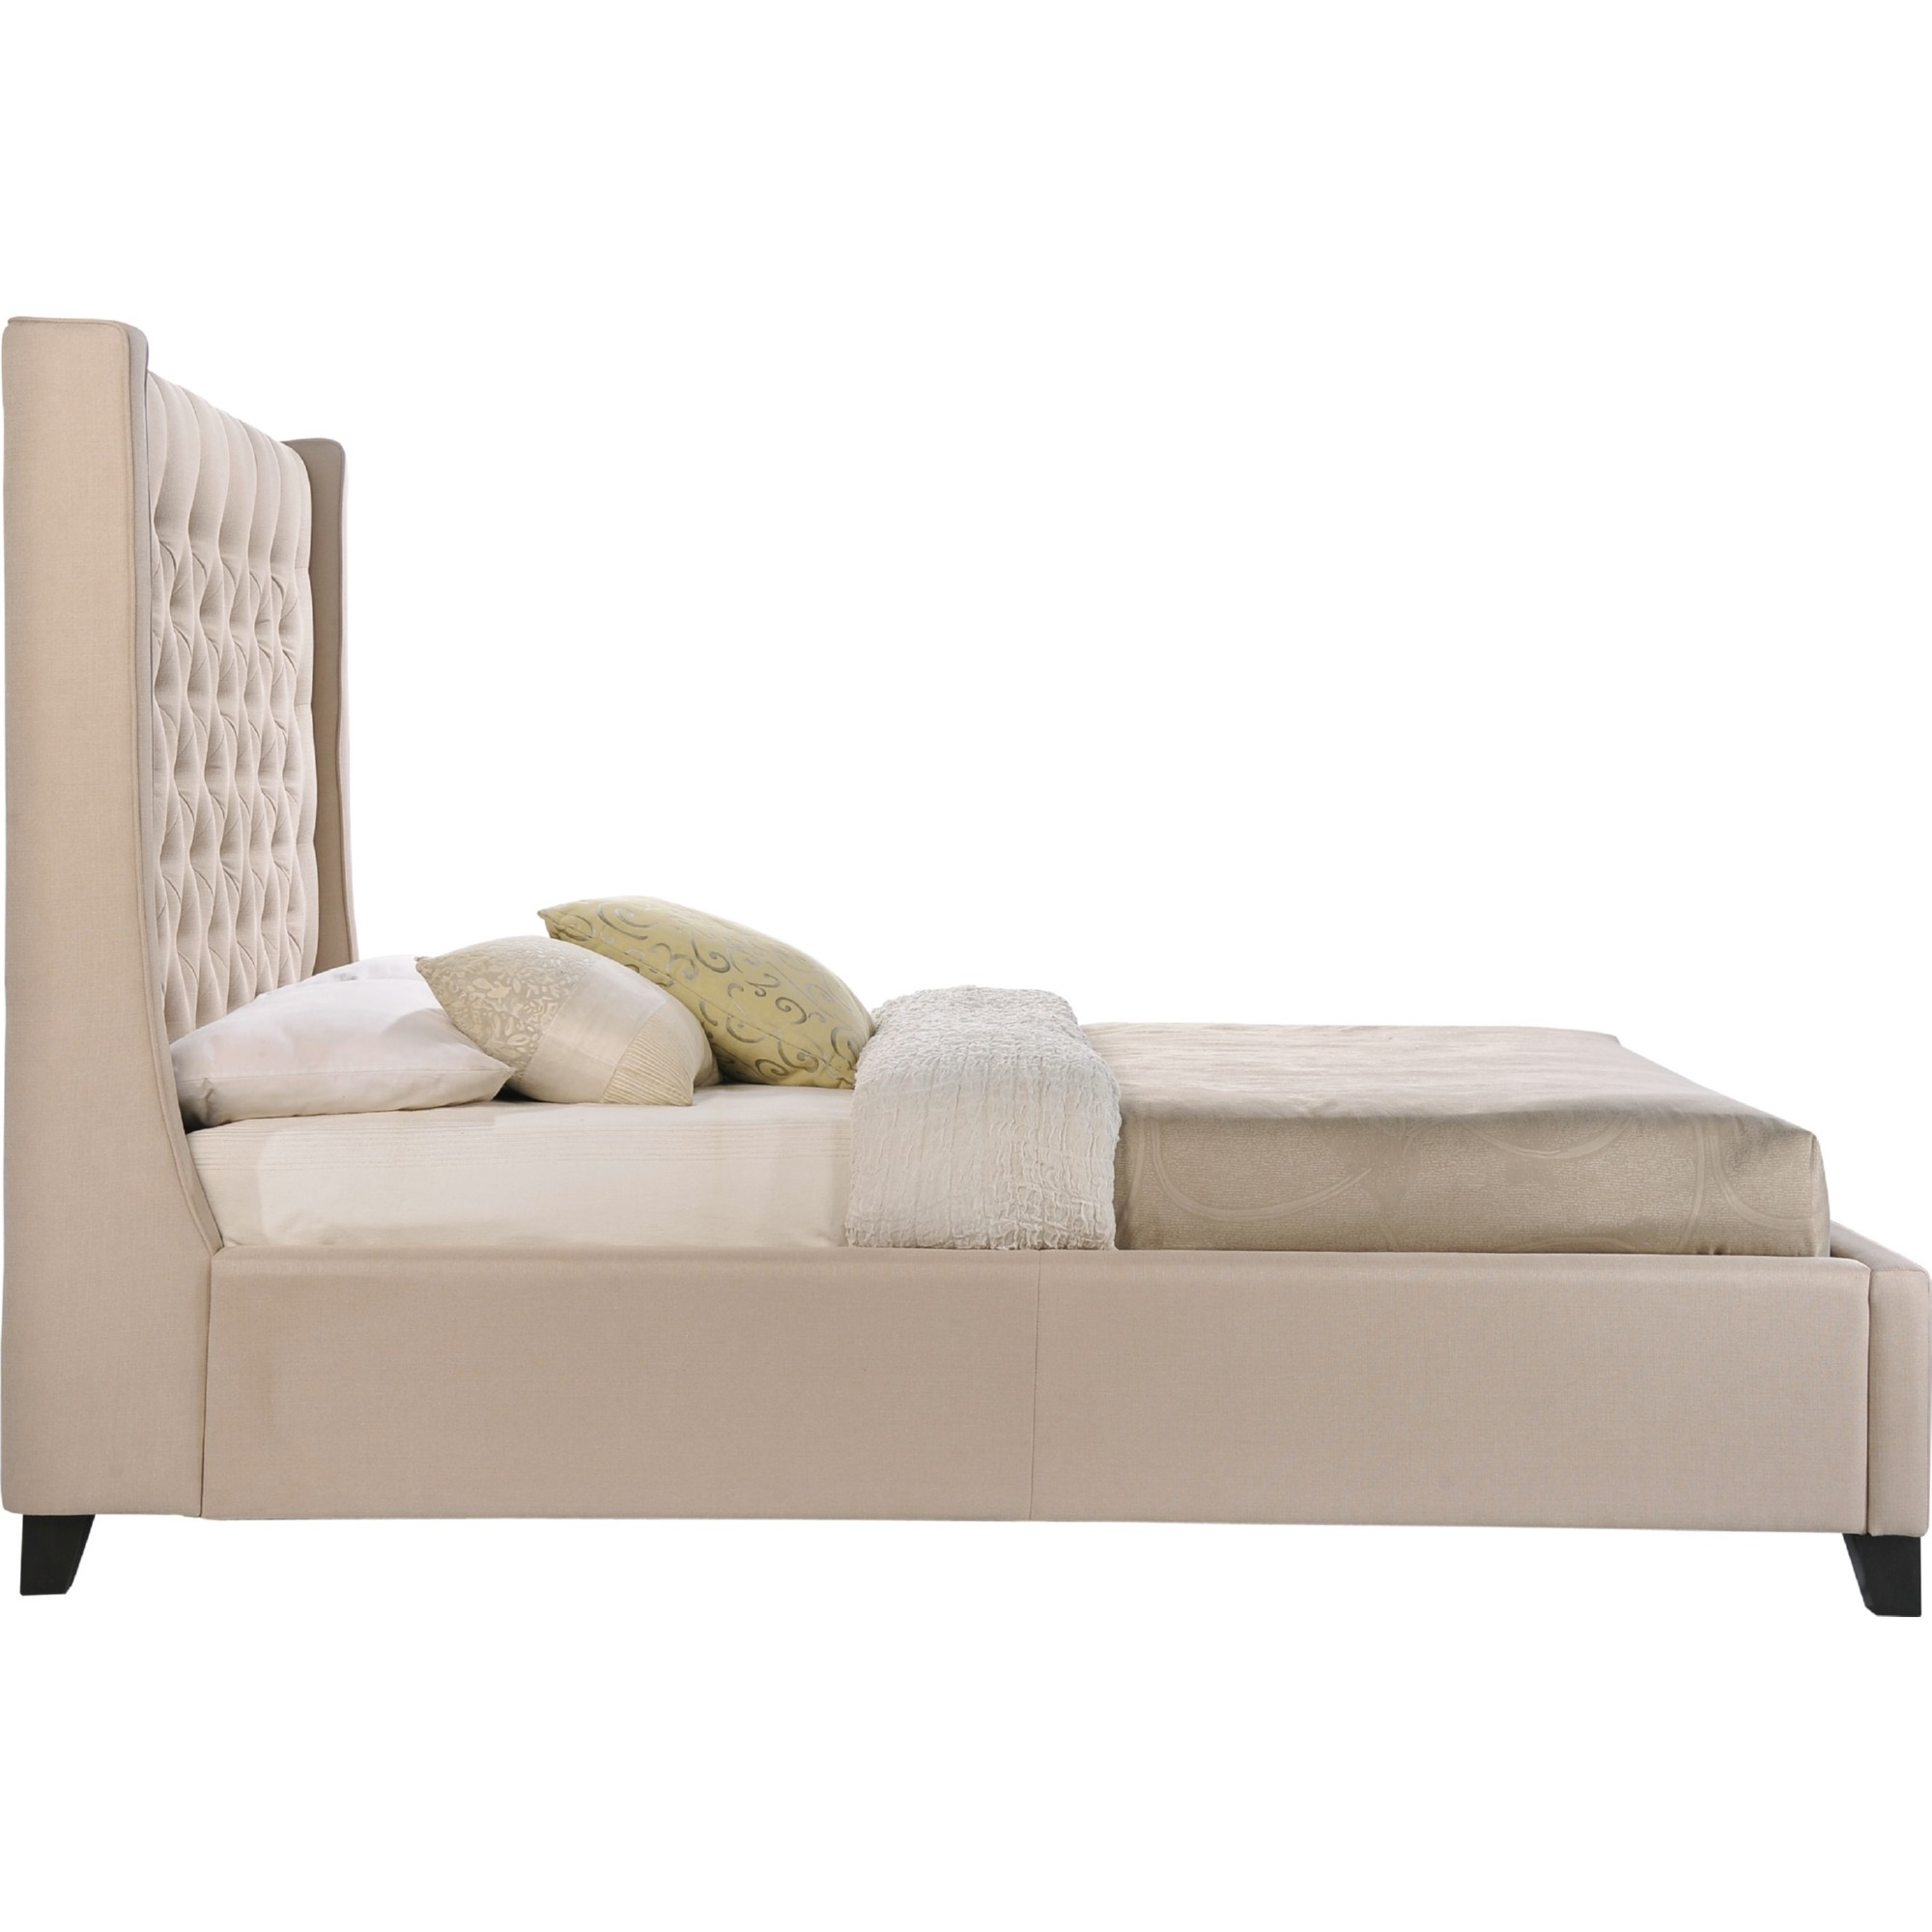 LuXeo Home Furnishings LUX Q6479 222 Huntington Queen Tufted